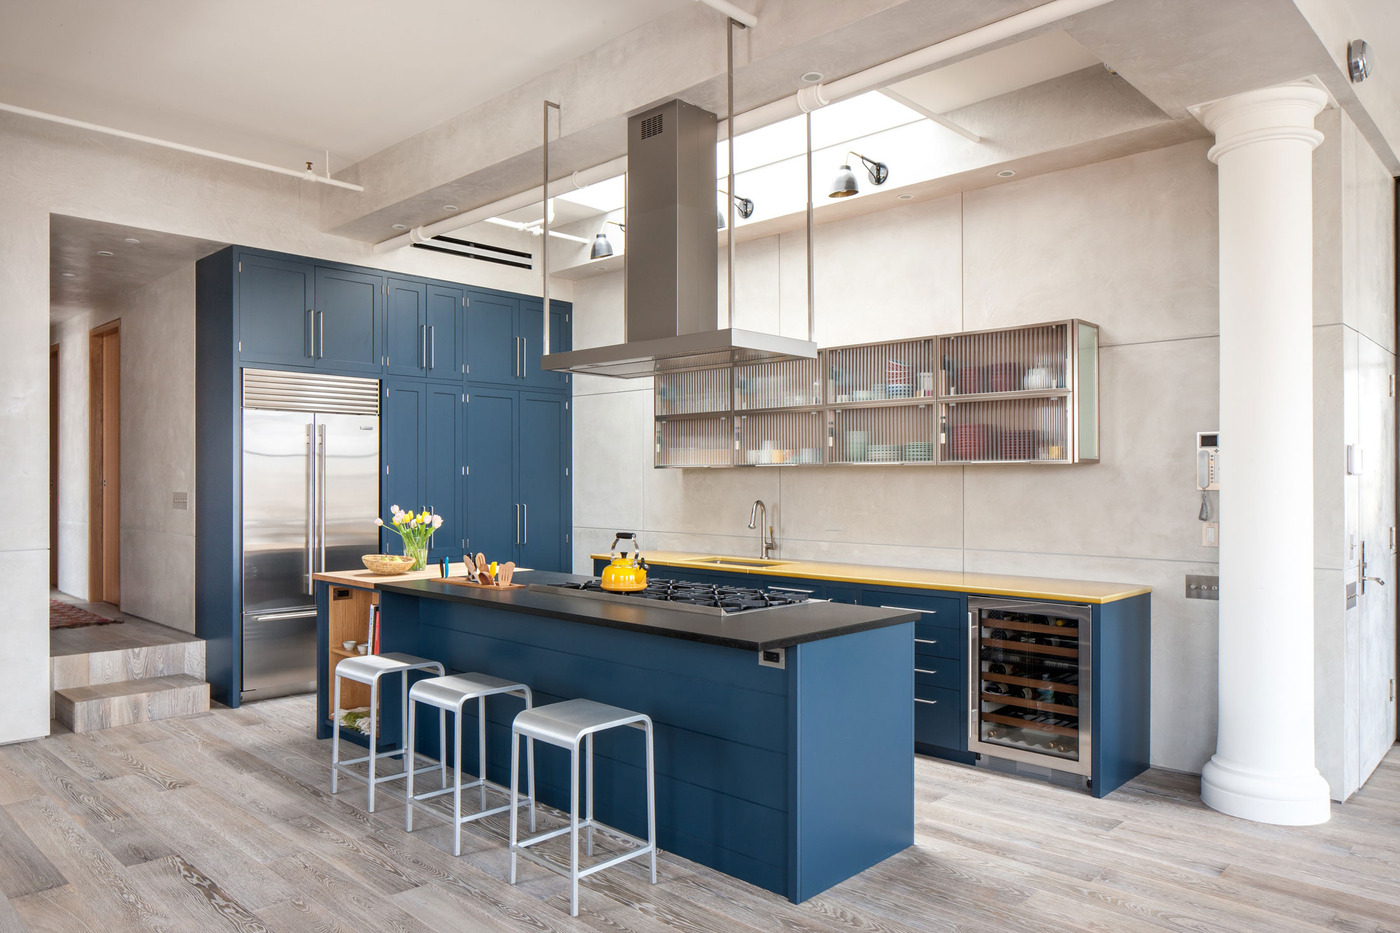 View in gallery dark blue kitchen on light color floors 1 thumb 630xauto 54618 royal blue kitchen on light